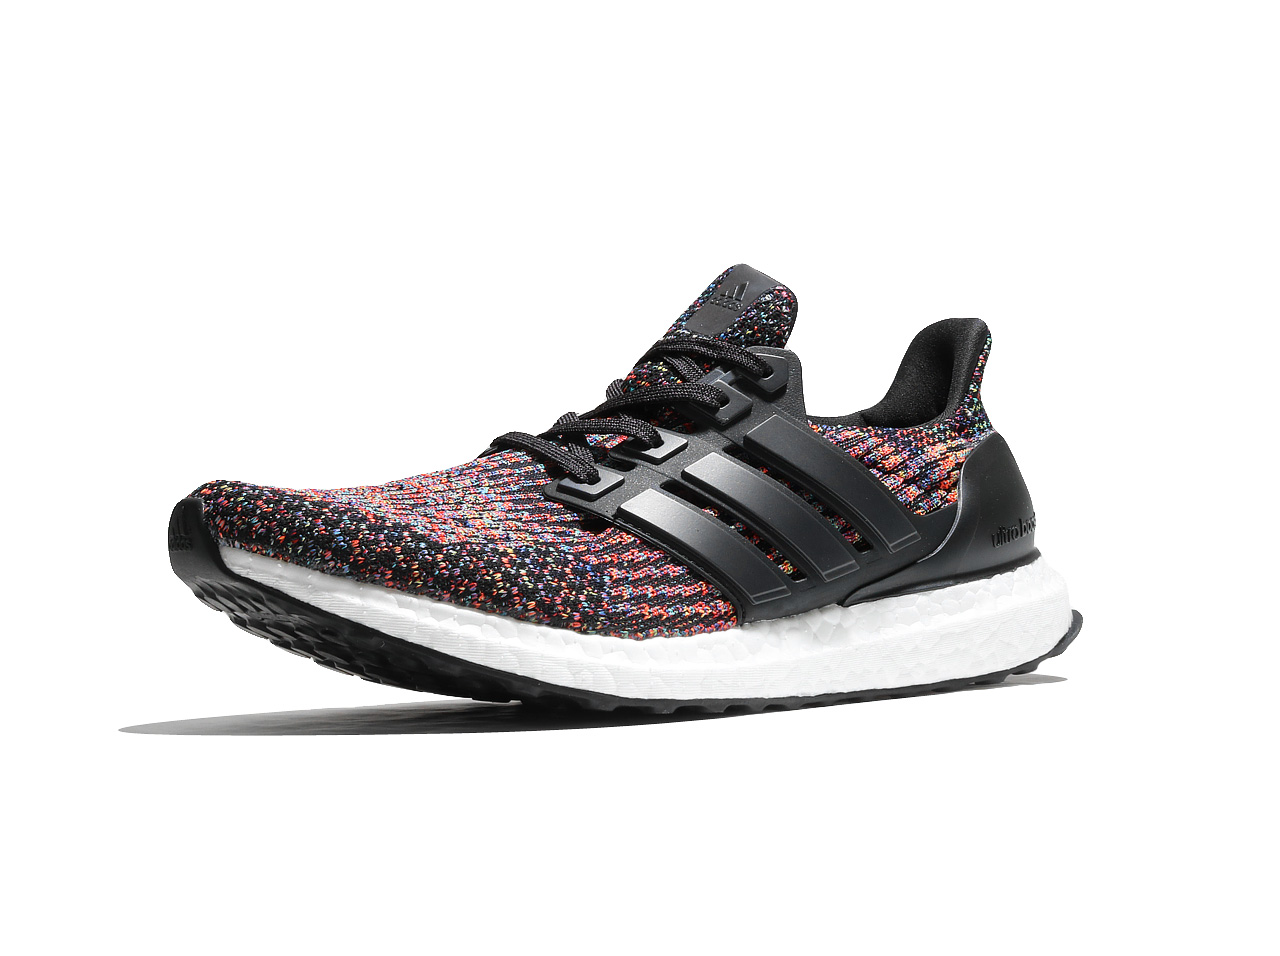 adidas_ultraboost_ltd_cg3004